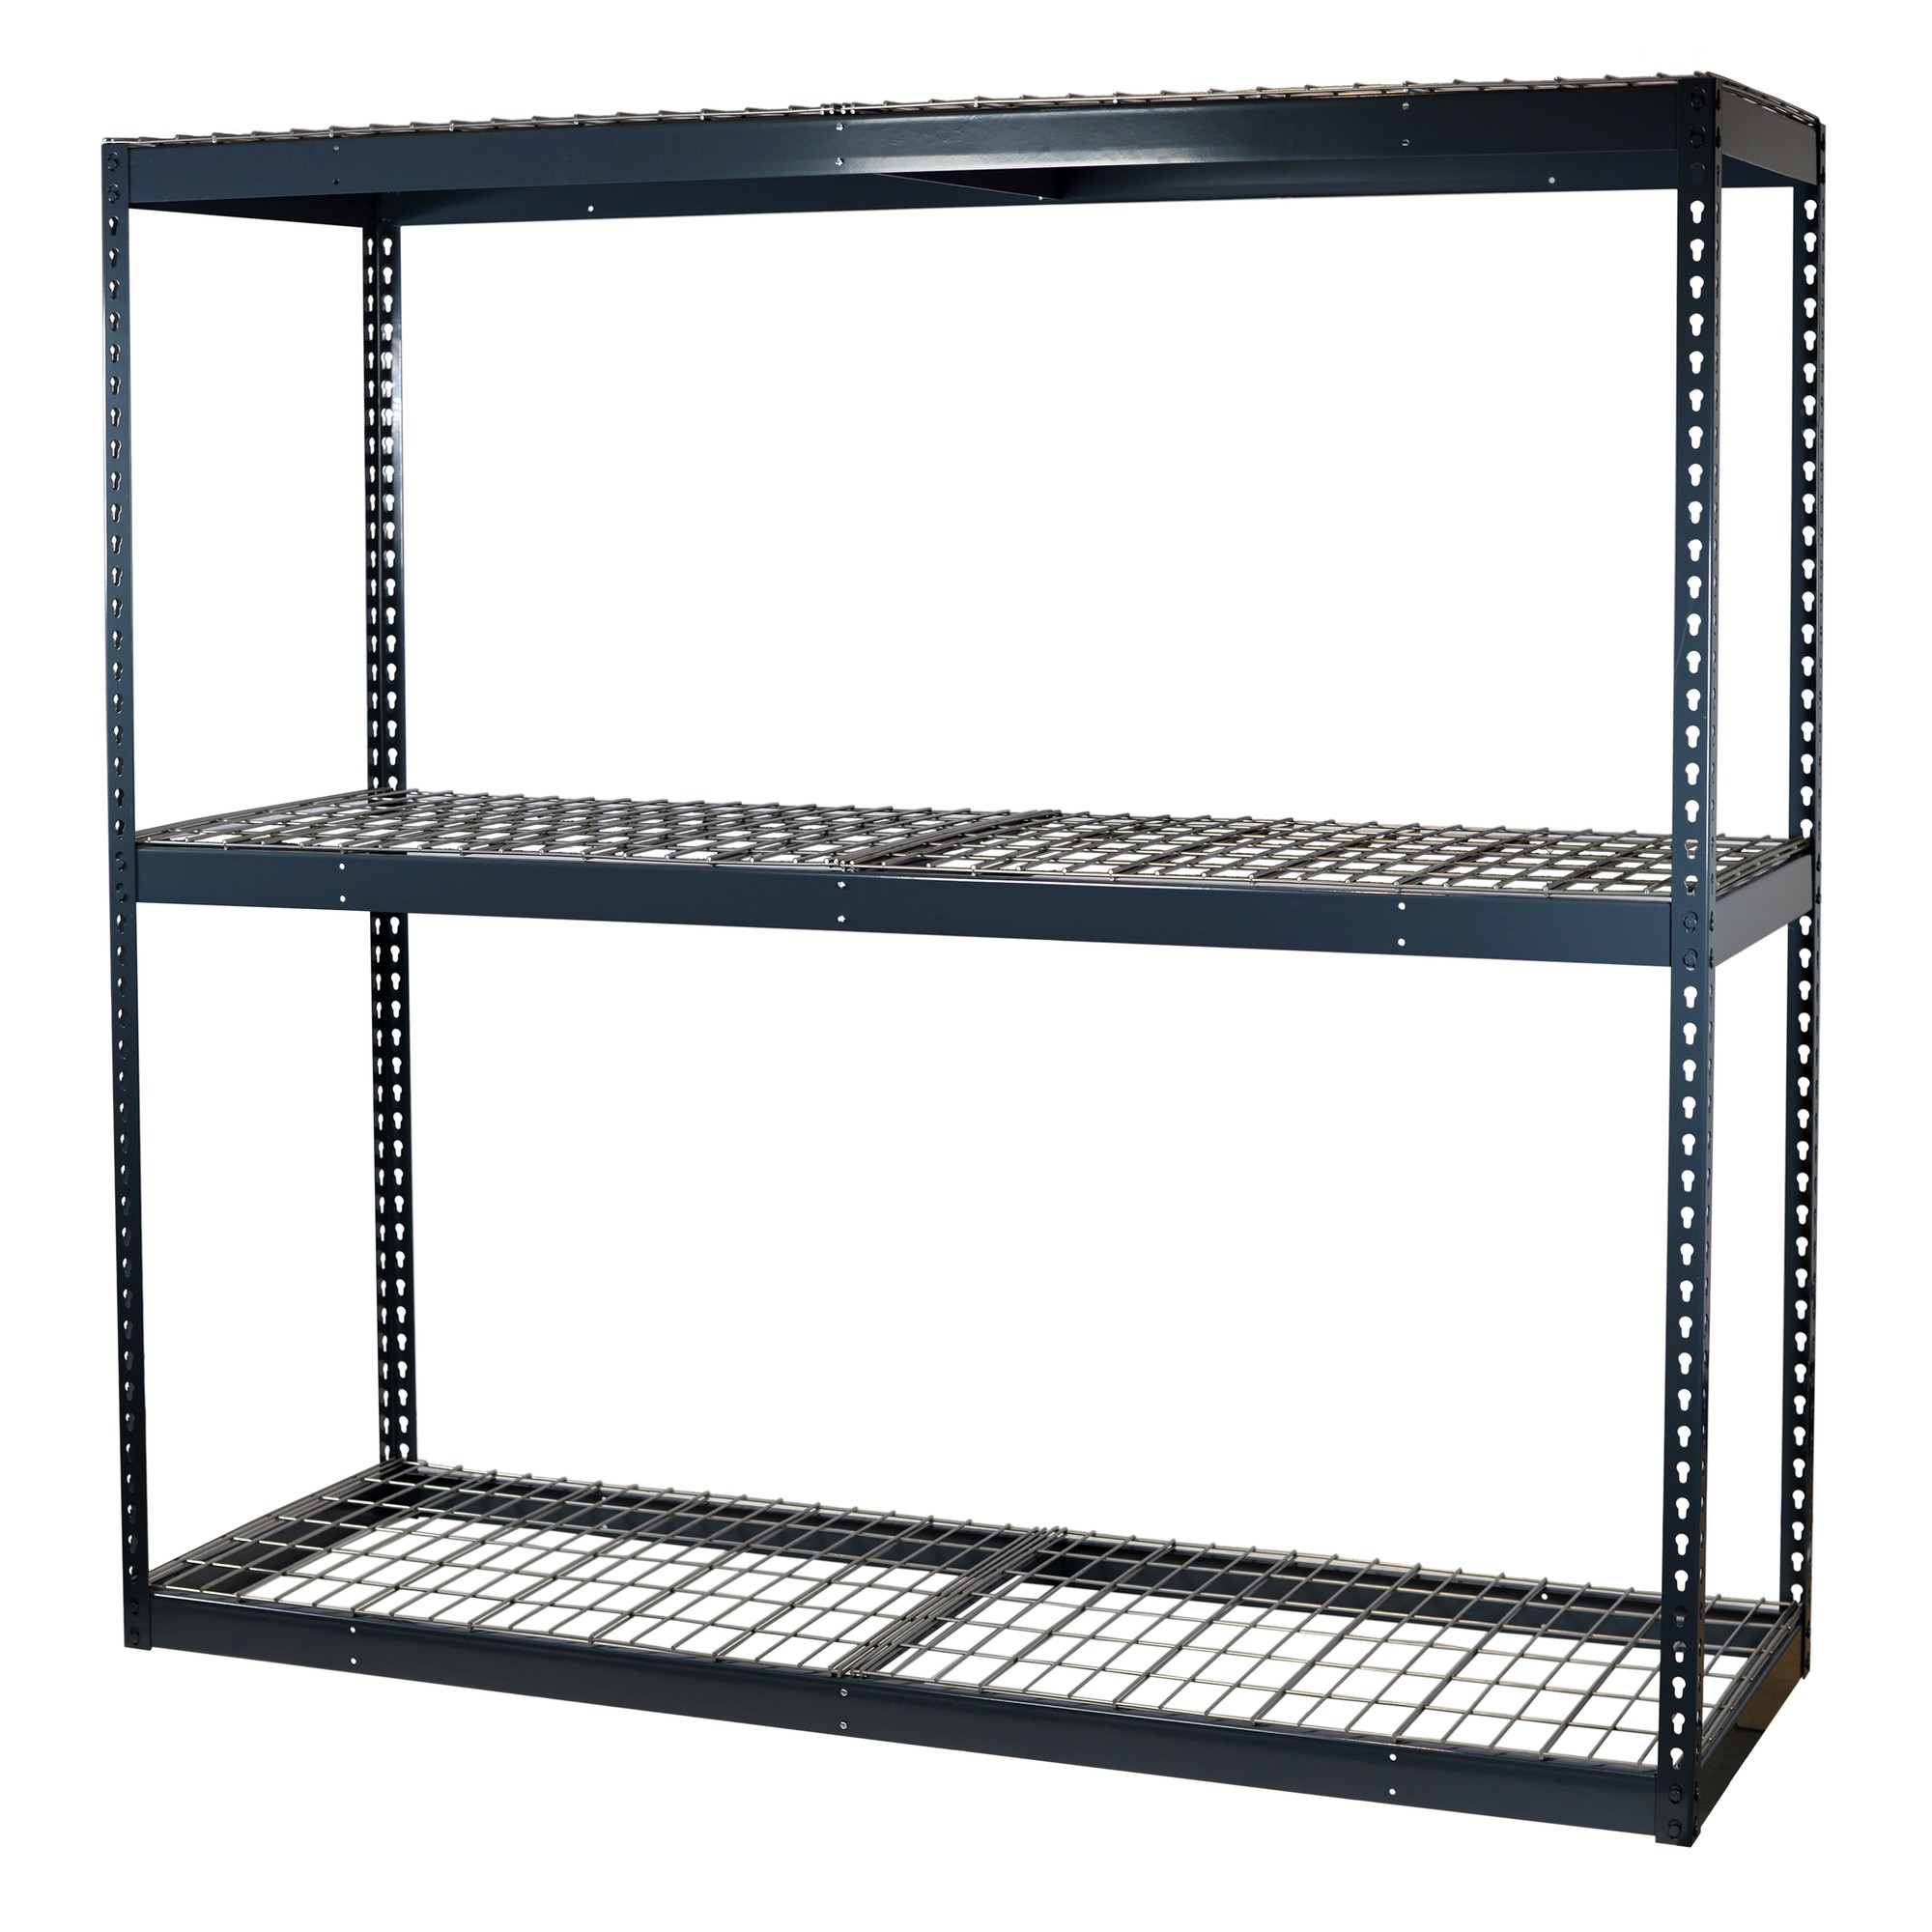 Storage Max Garage Shelving Boltless, 72 x 24 x 72, Heavy Duty, Double Rivet Beams, 3 Shelves